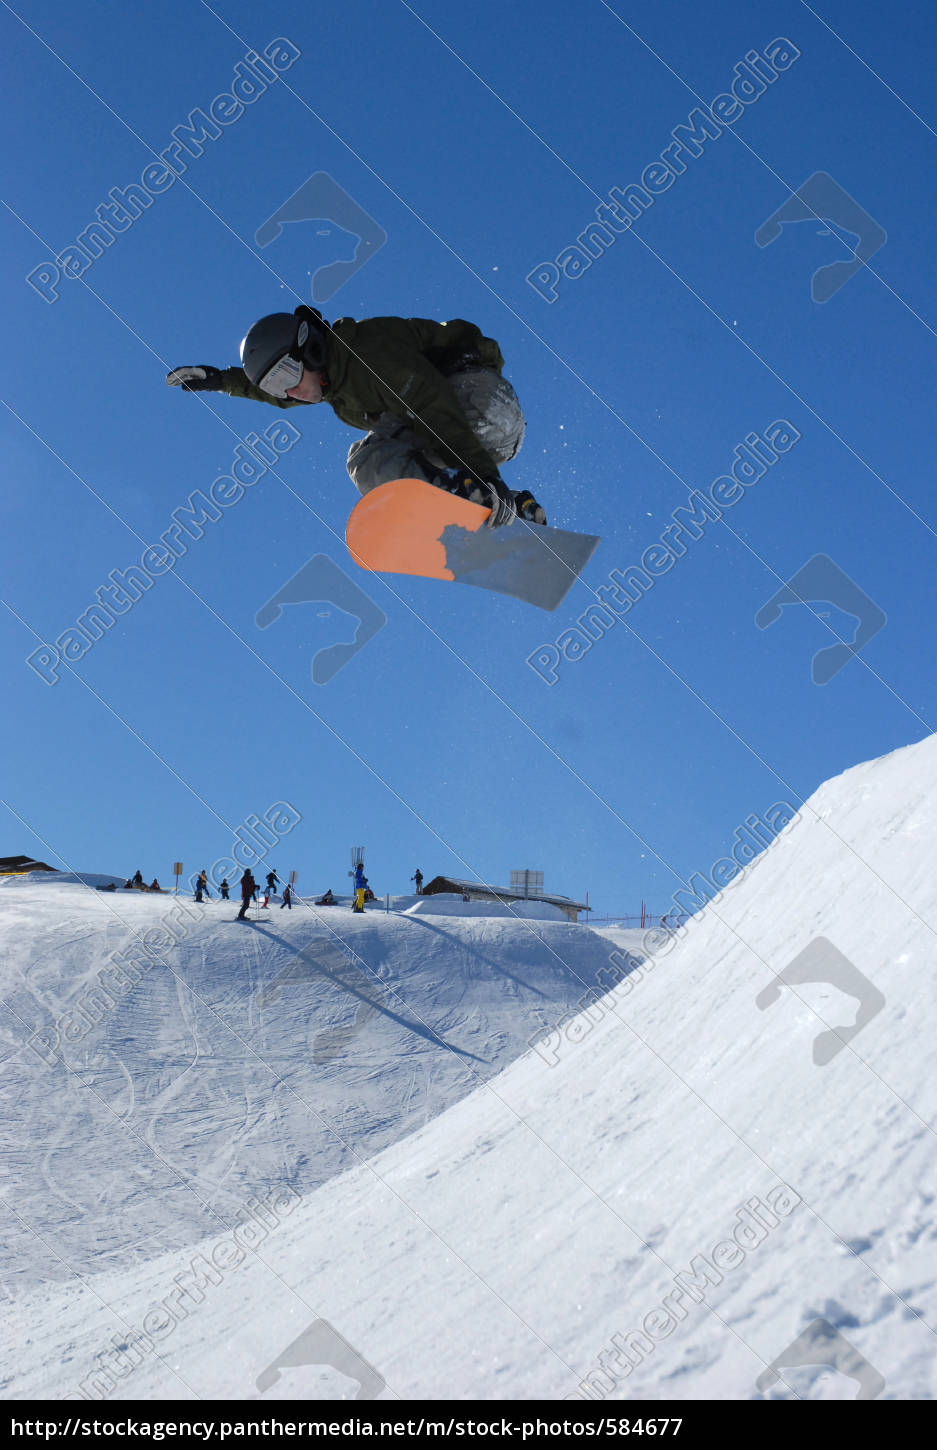 grave, with, snowboard, over, corner - 584677